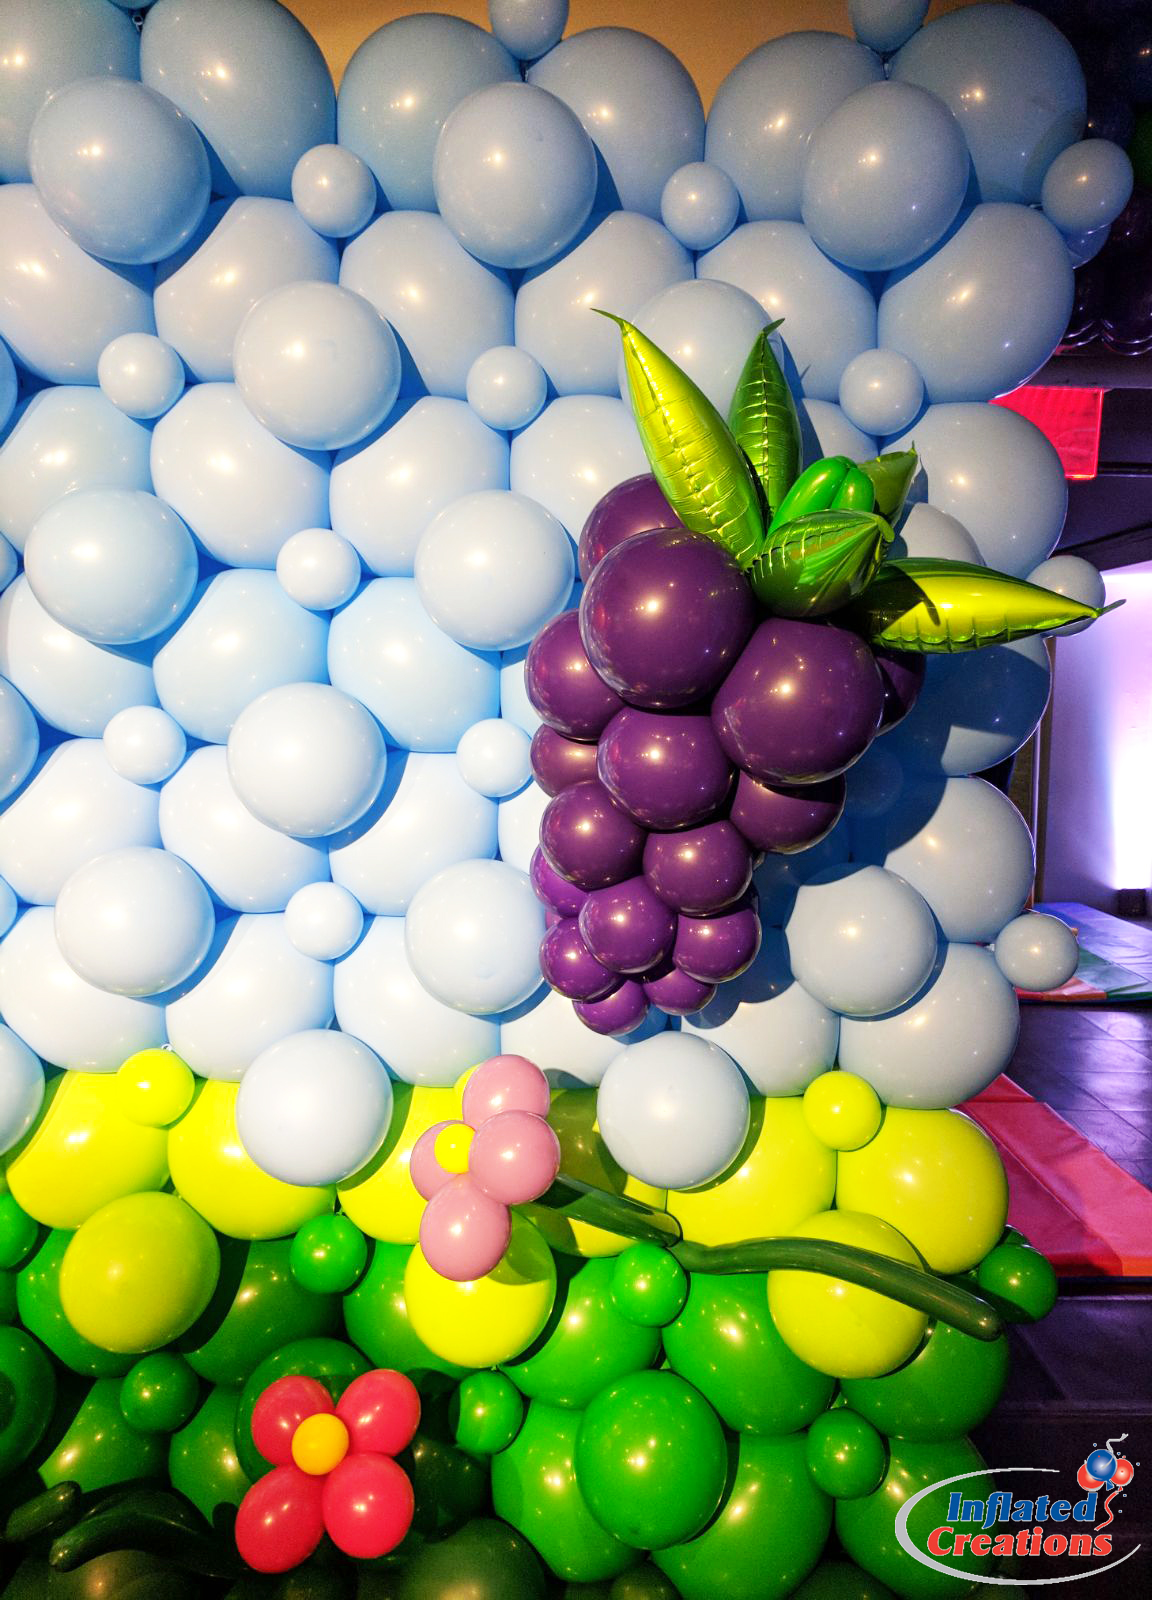 The Very Hungry Caterpillar - Grapes